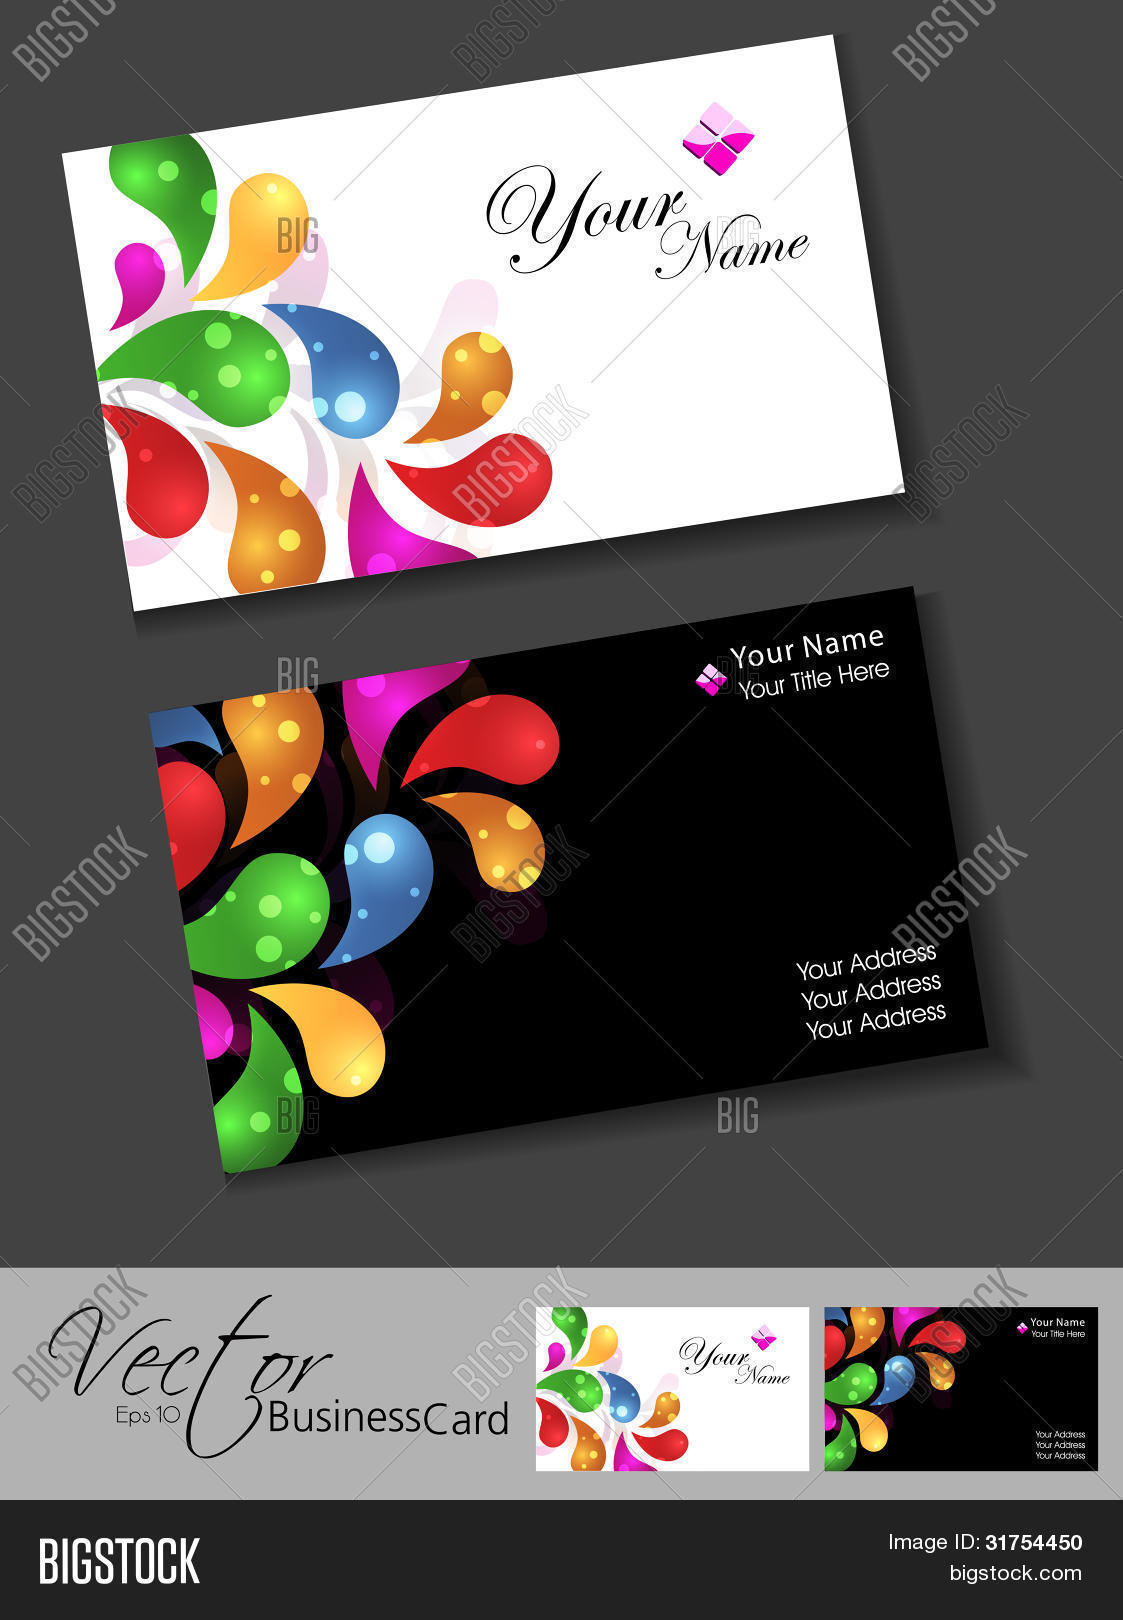 Professional business card set vector photo bigstock professional business card set template or visiting card set artistic abstract colorful floral reheart Gallery